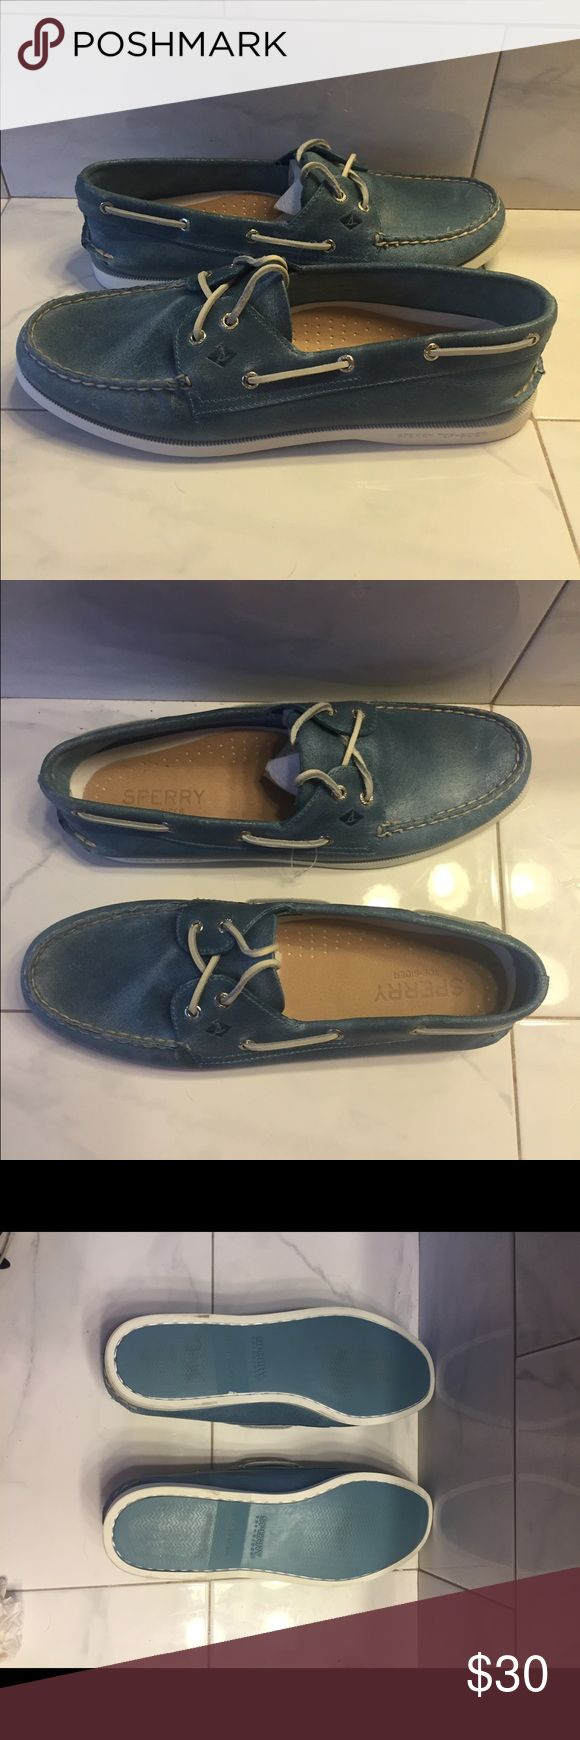 Selling this Sperry Top siders men Sz 11 NWOT chambray blue on Poshmark! My username is: mygirls1618. #shopmycloset #poshmark #fashion #shopping #style #forsale #Sperry Top-Sider #Other